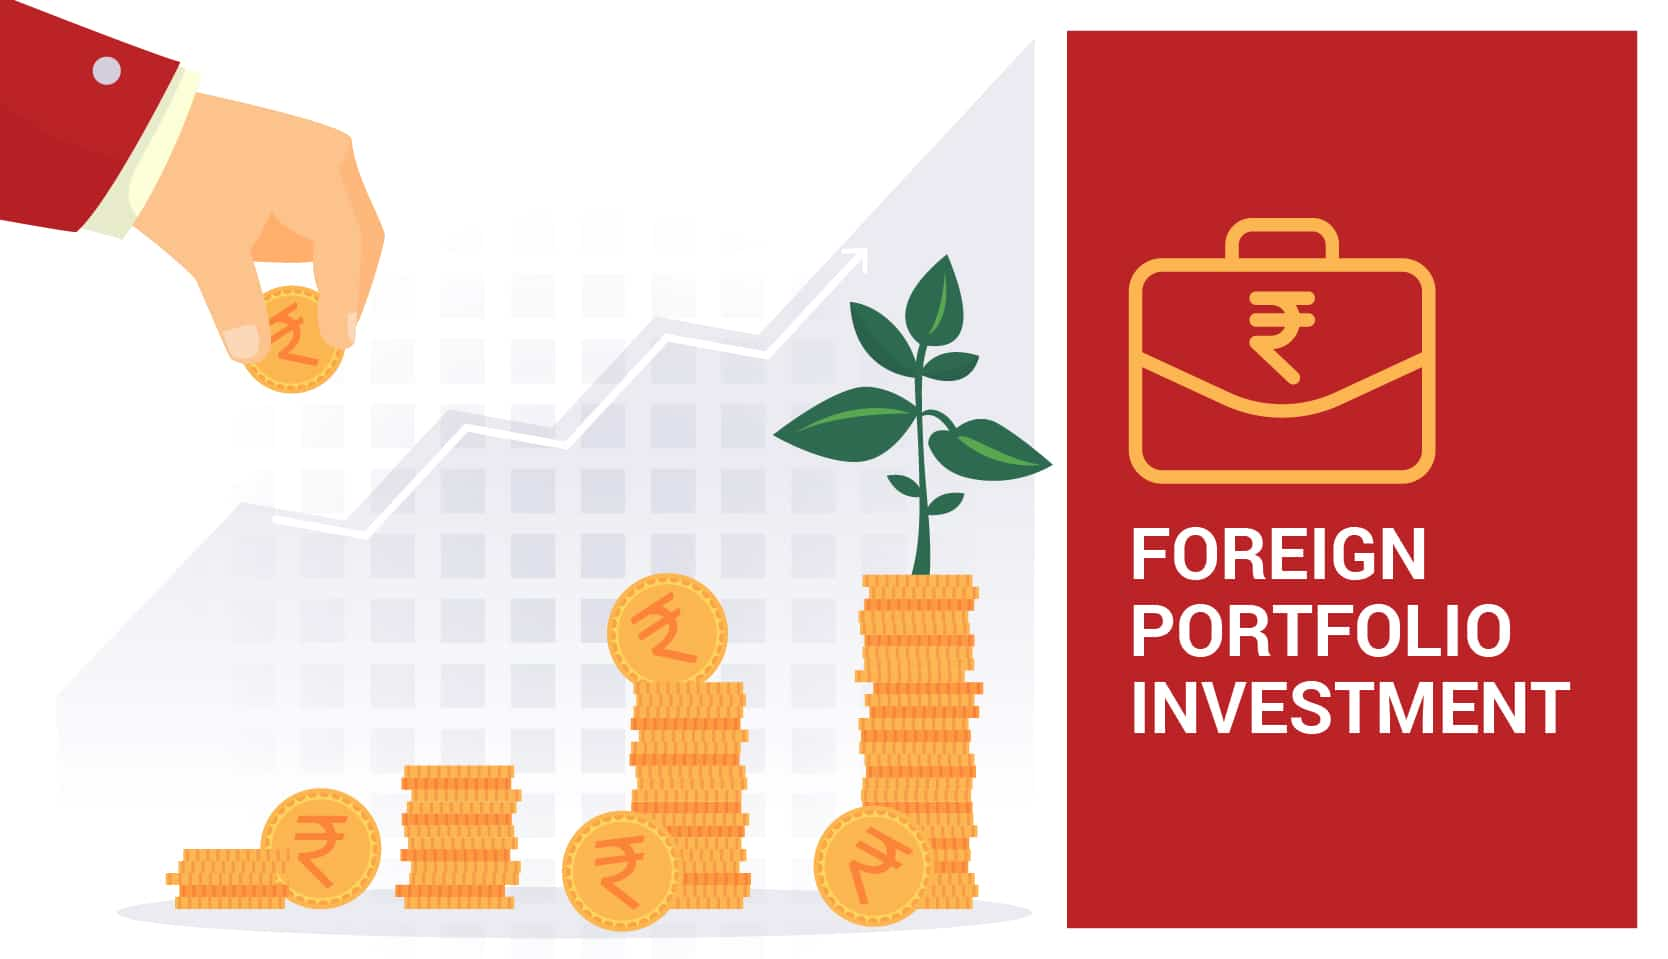 Foreign Portfolio Investment